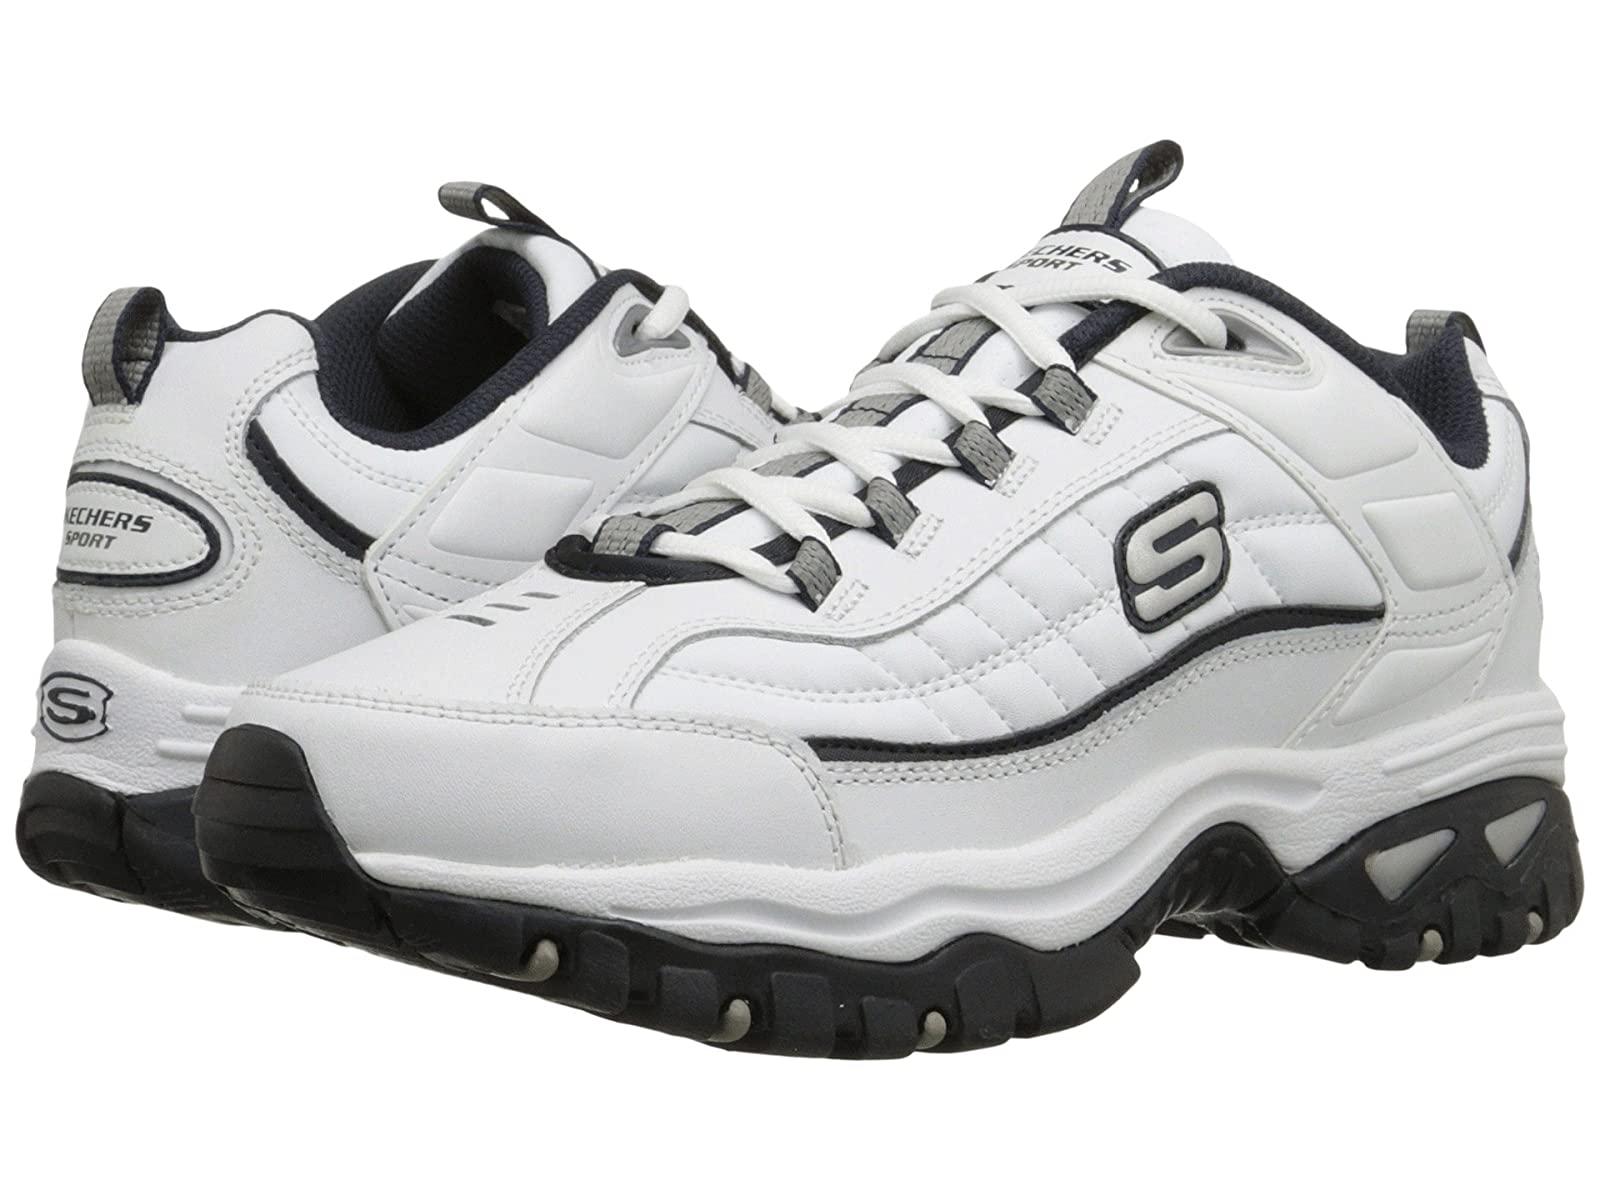 SKECHERS Energy - AfterburnCheap and distinctive eye-catching shoes